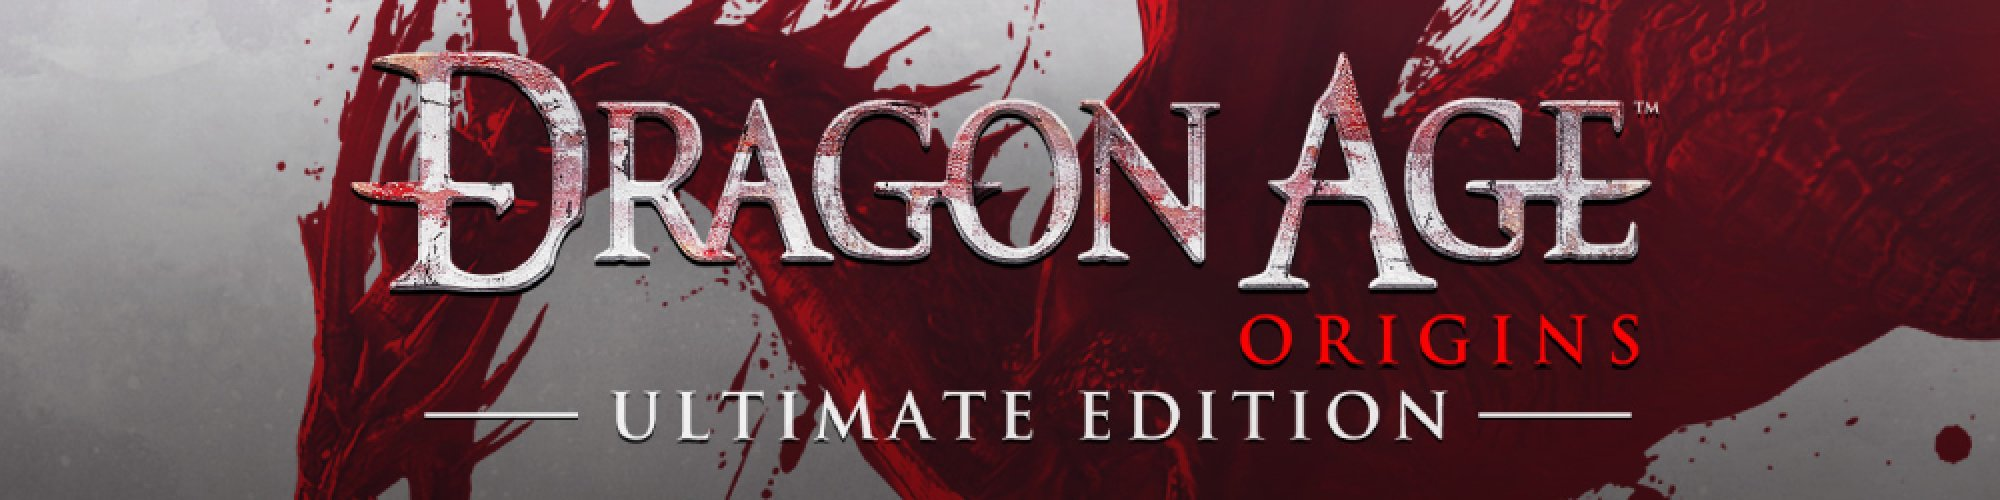 Dragon Age Origins Ultimate Edition banner